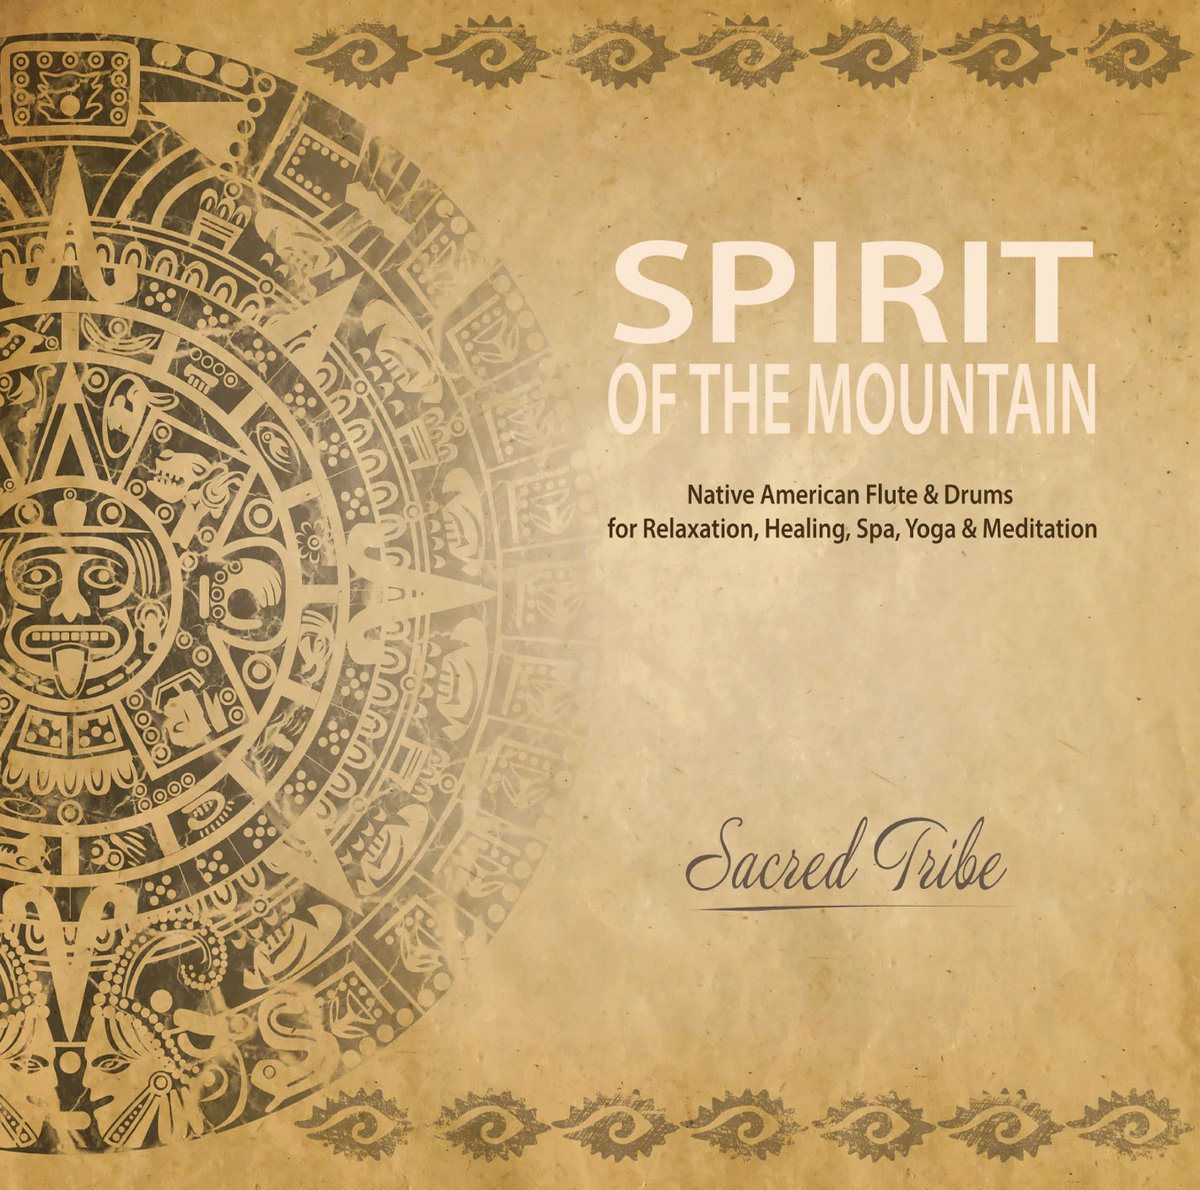 Spirit of the Mountain: Native American Flute & Drums for